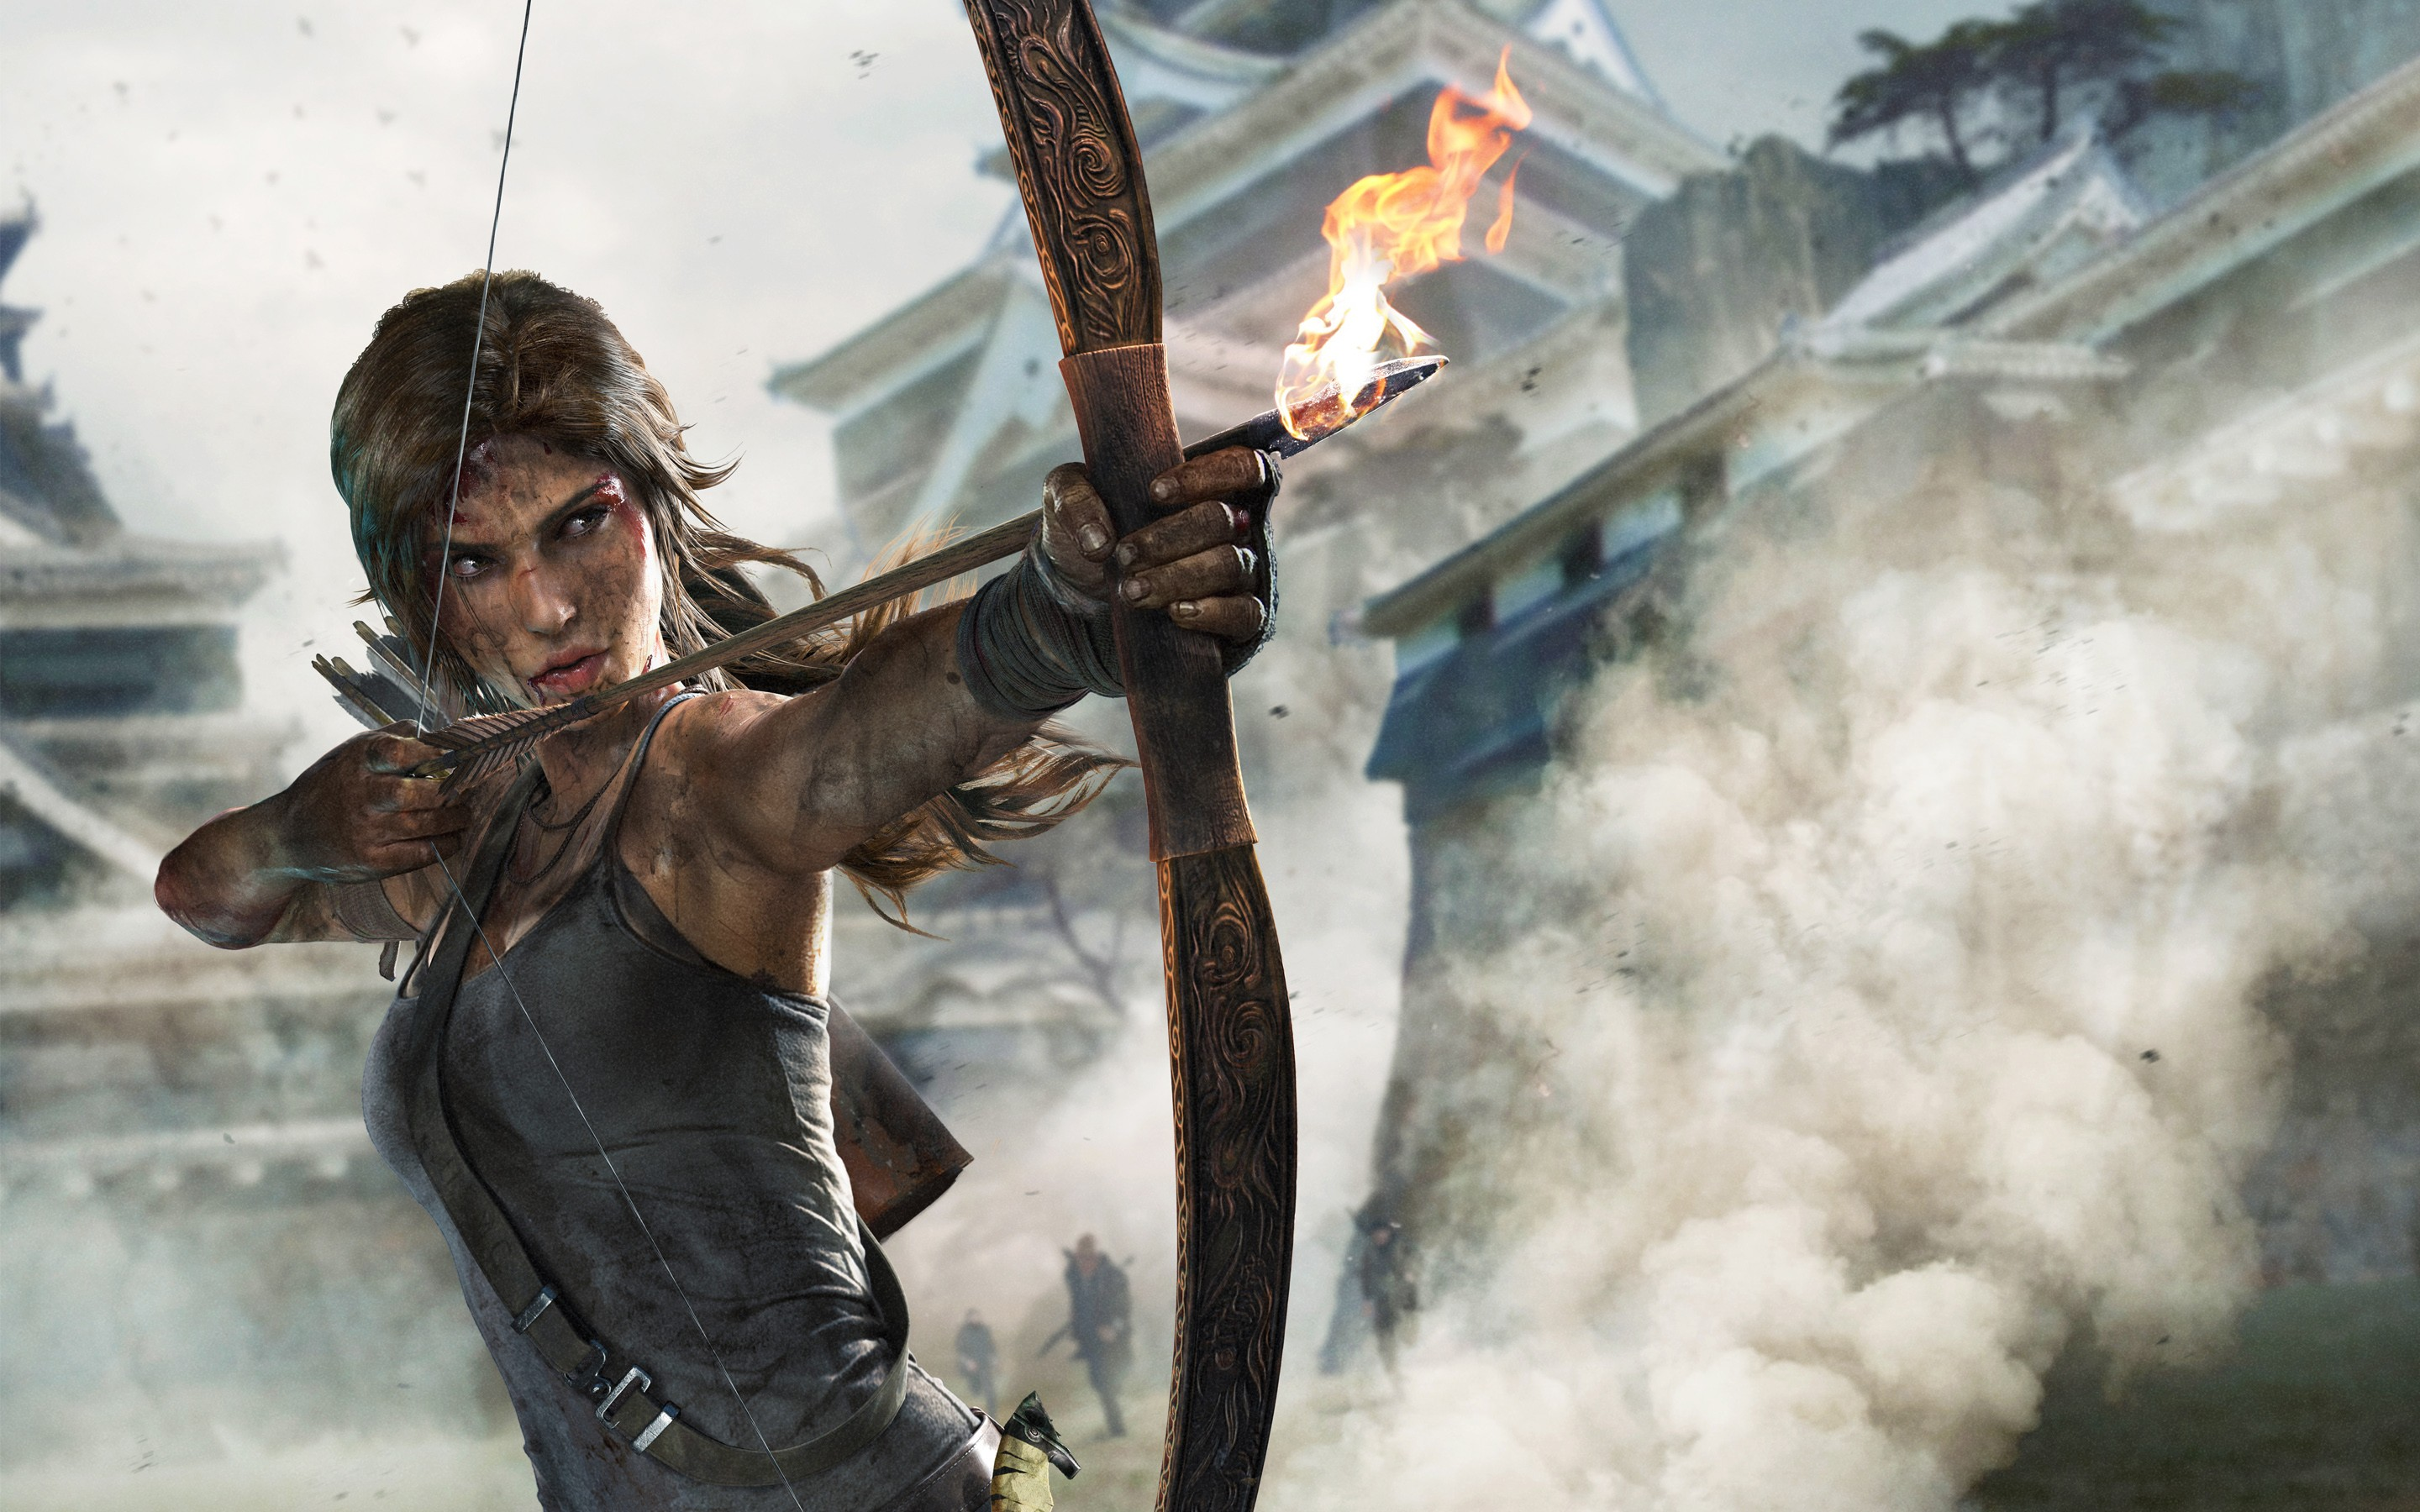 Tomb Raider: svelate nuove foto dal set